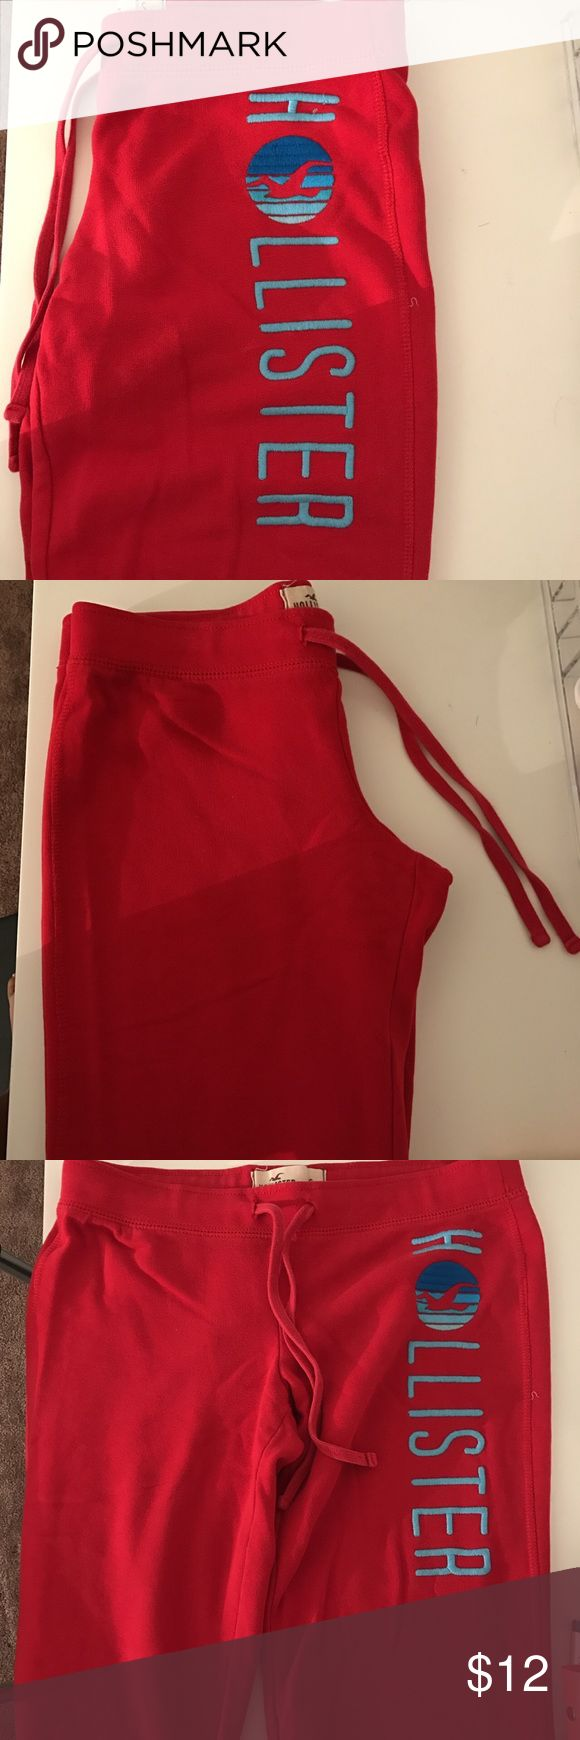 Hollister sweats Good condition #hollister #cute #red #sweats #comfy #cheap Hollister Pants Track Pants & Joggers